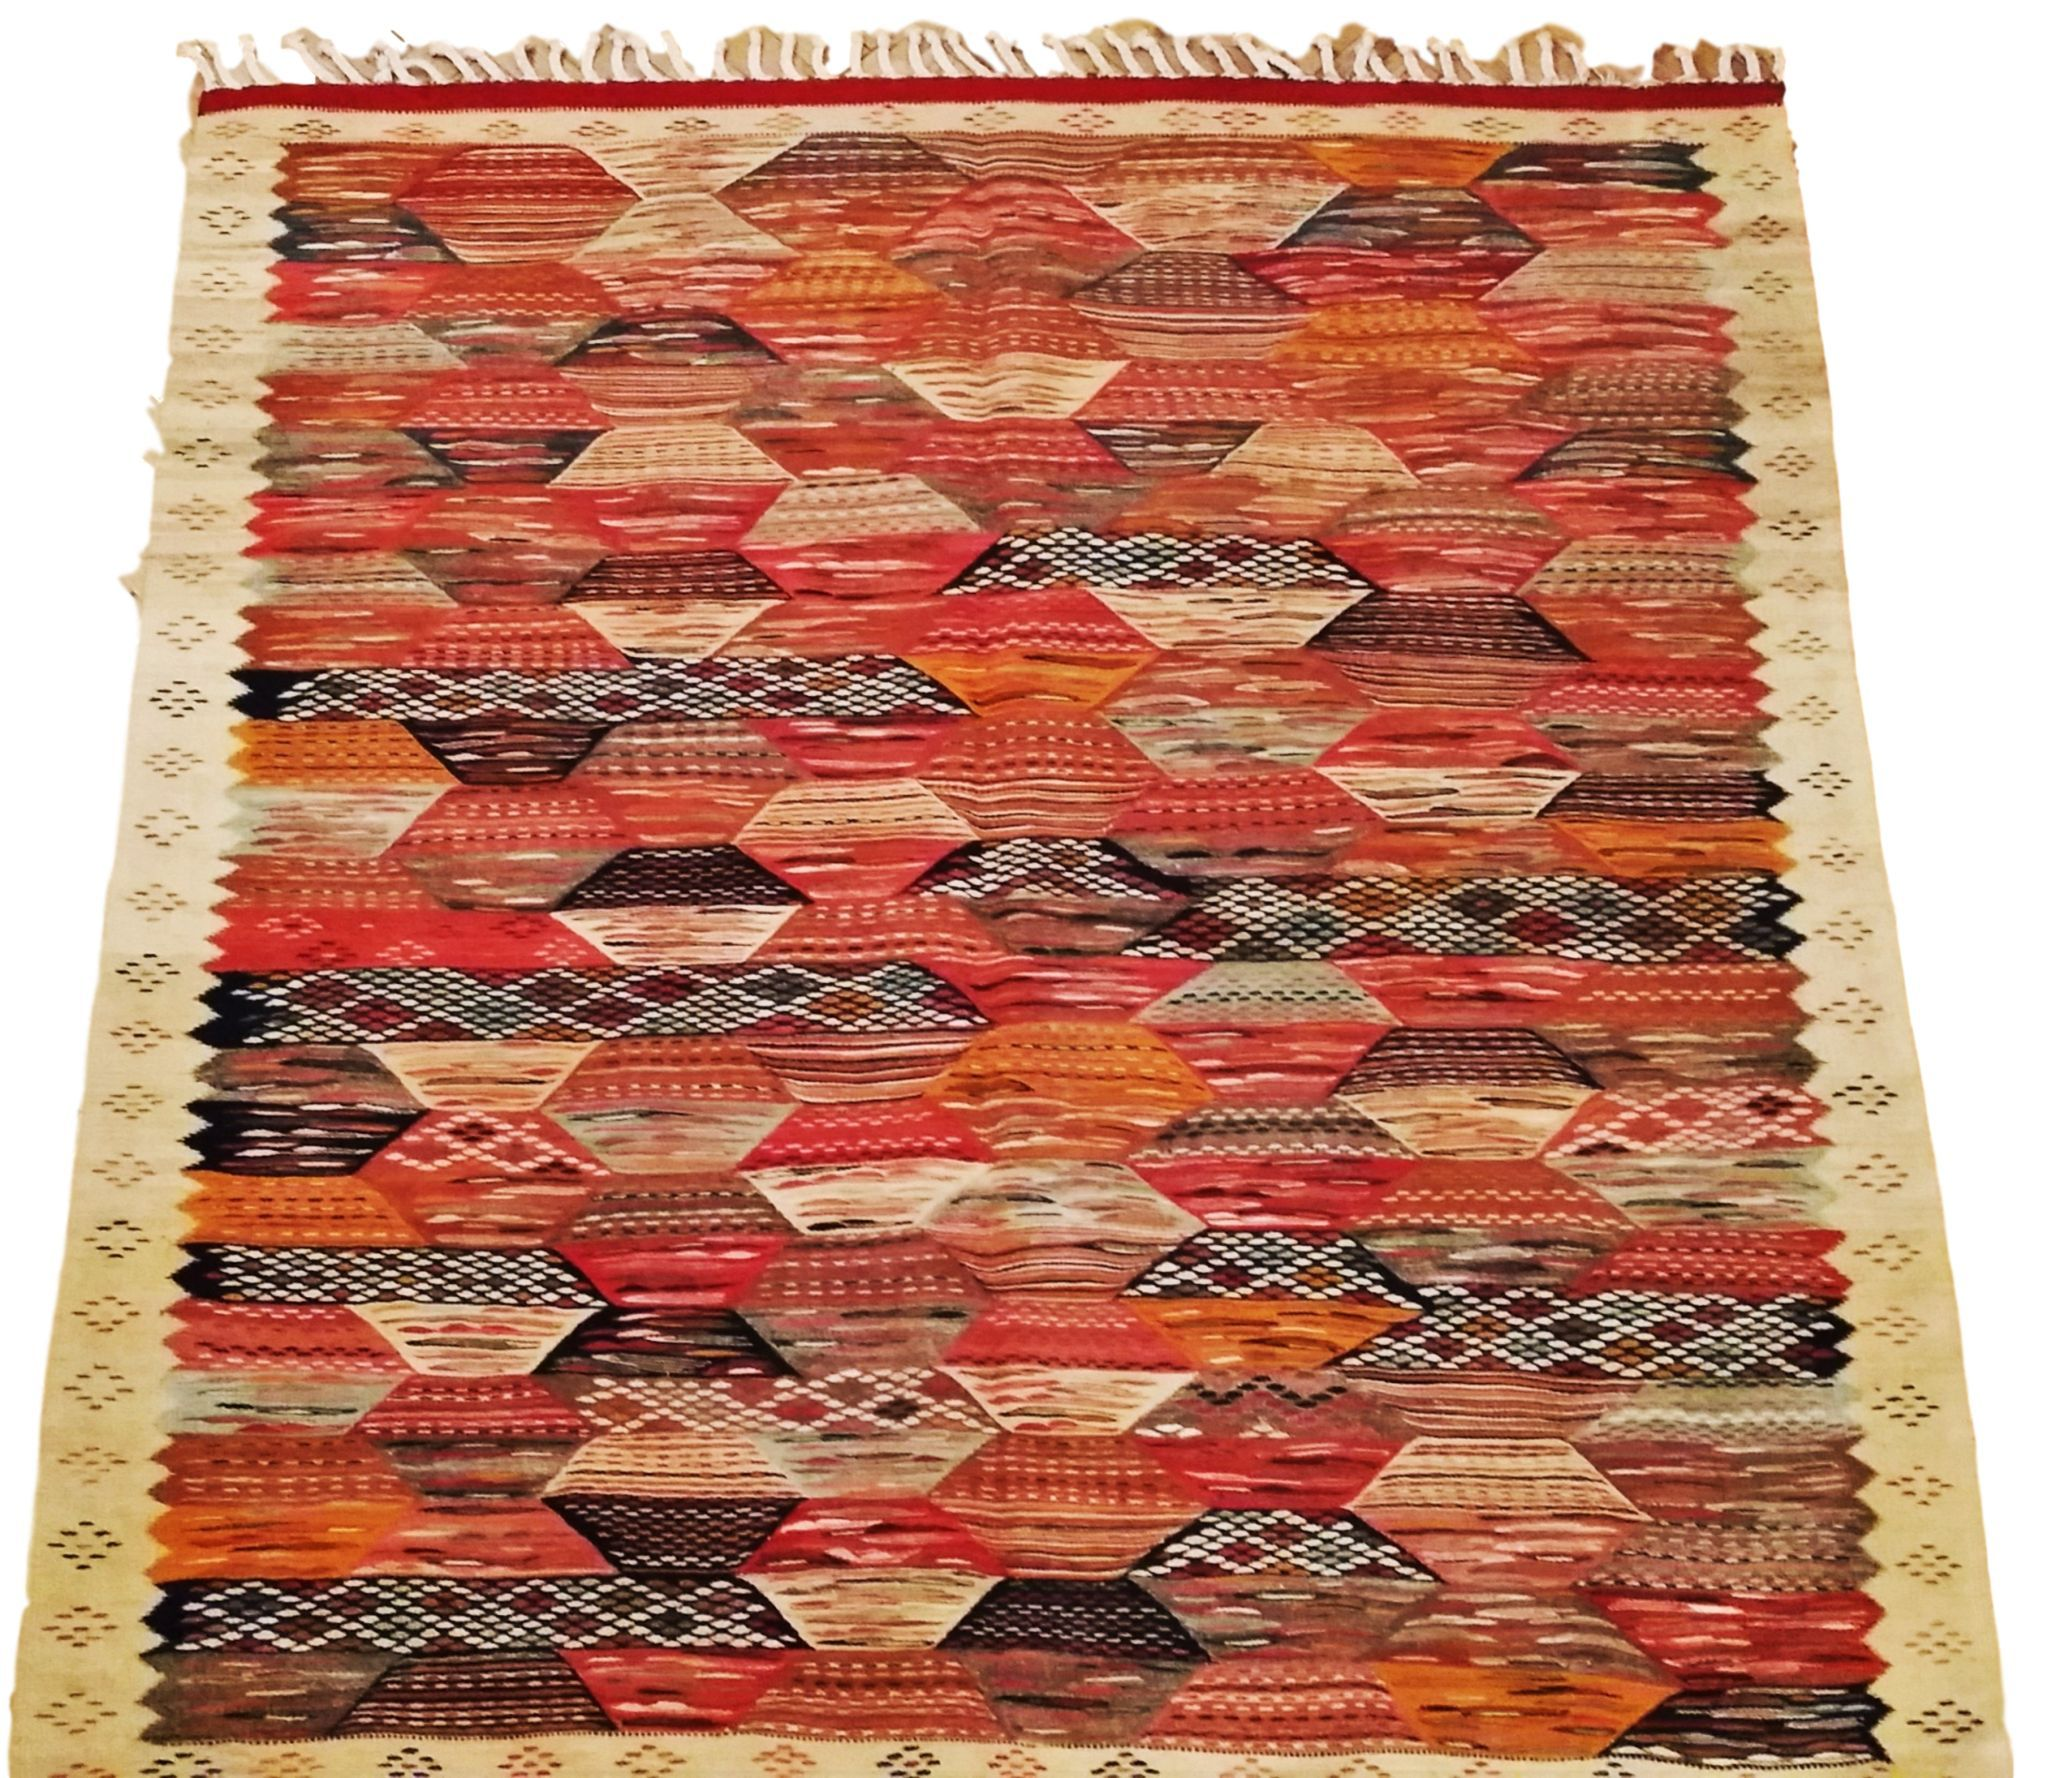 Moroccan Rug Zanafi Handmade Wool Carpet Multicolor Reversible